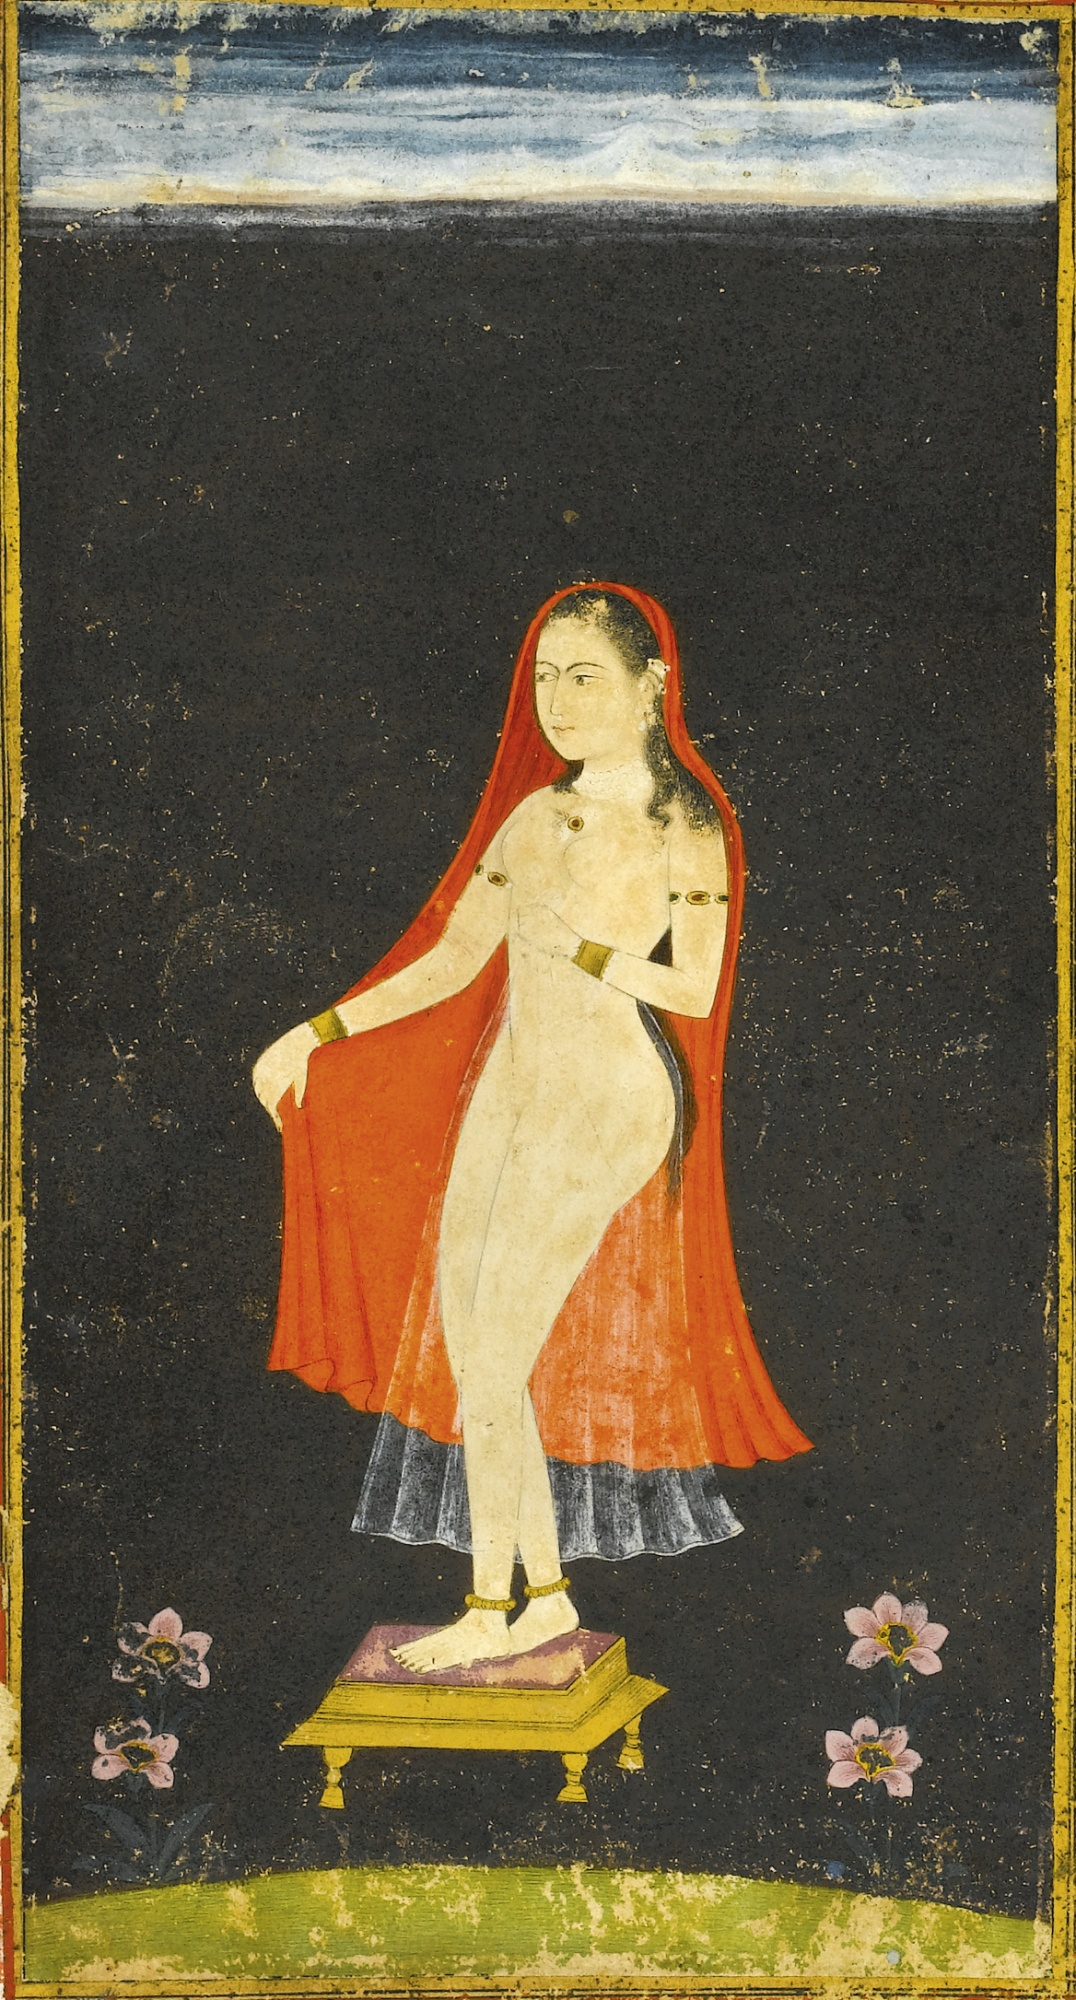 A Lady Bathing - Miniature Painting, India, Deccan, Late 17th or Early 18th century